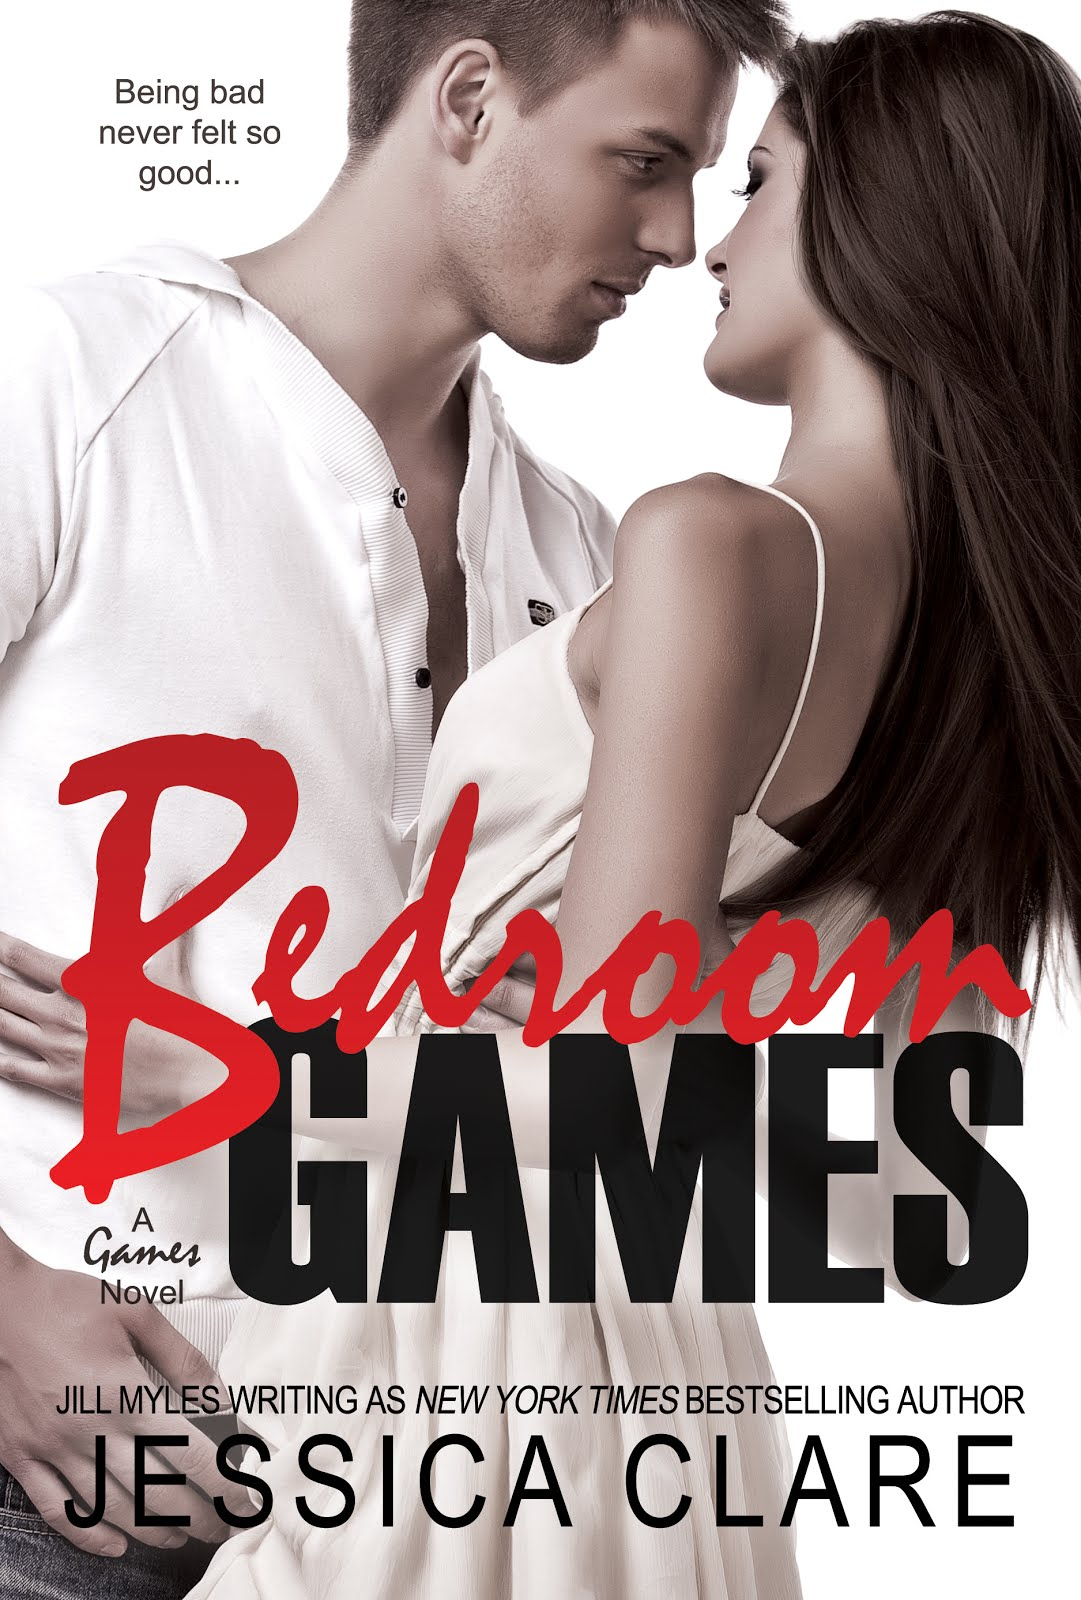 bedroom games by jessica clare.jpg